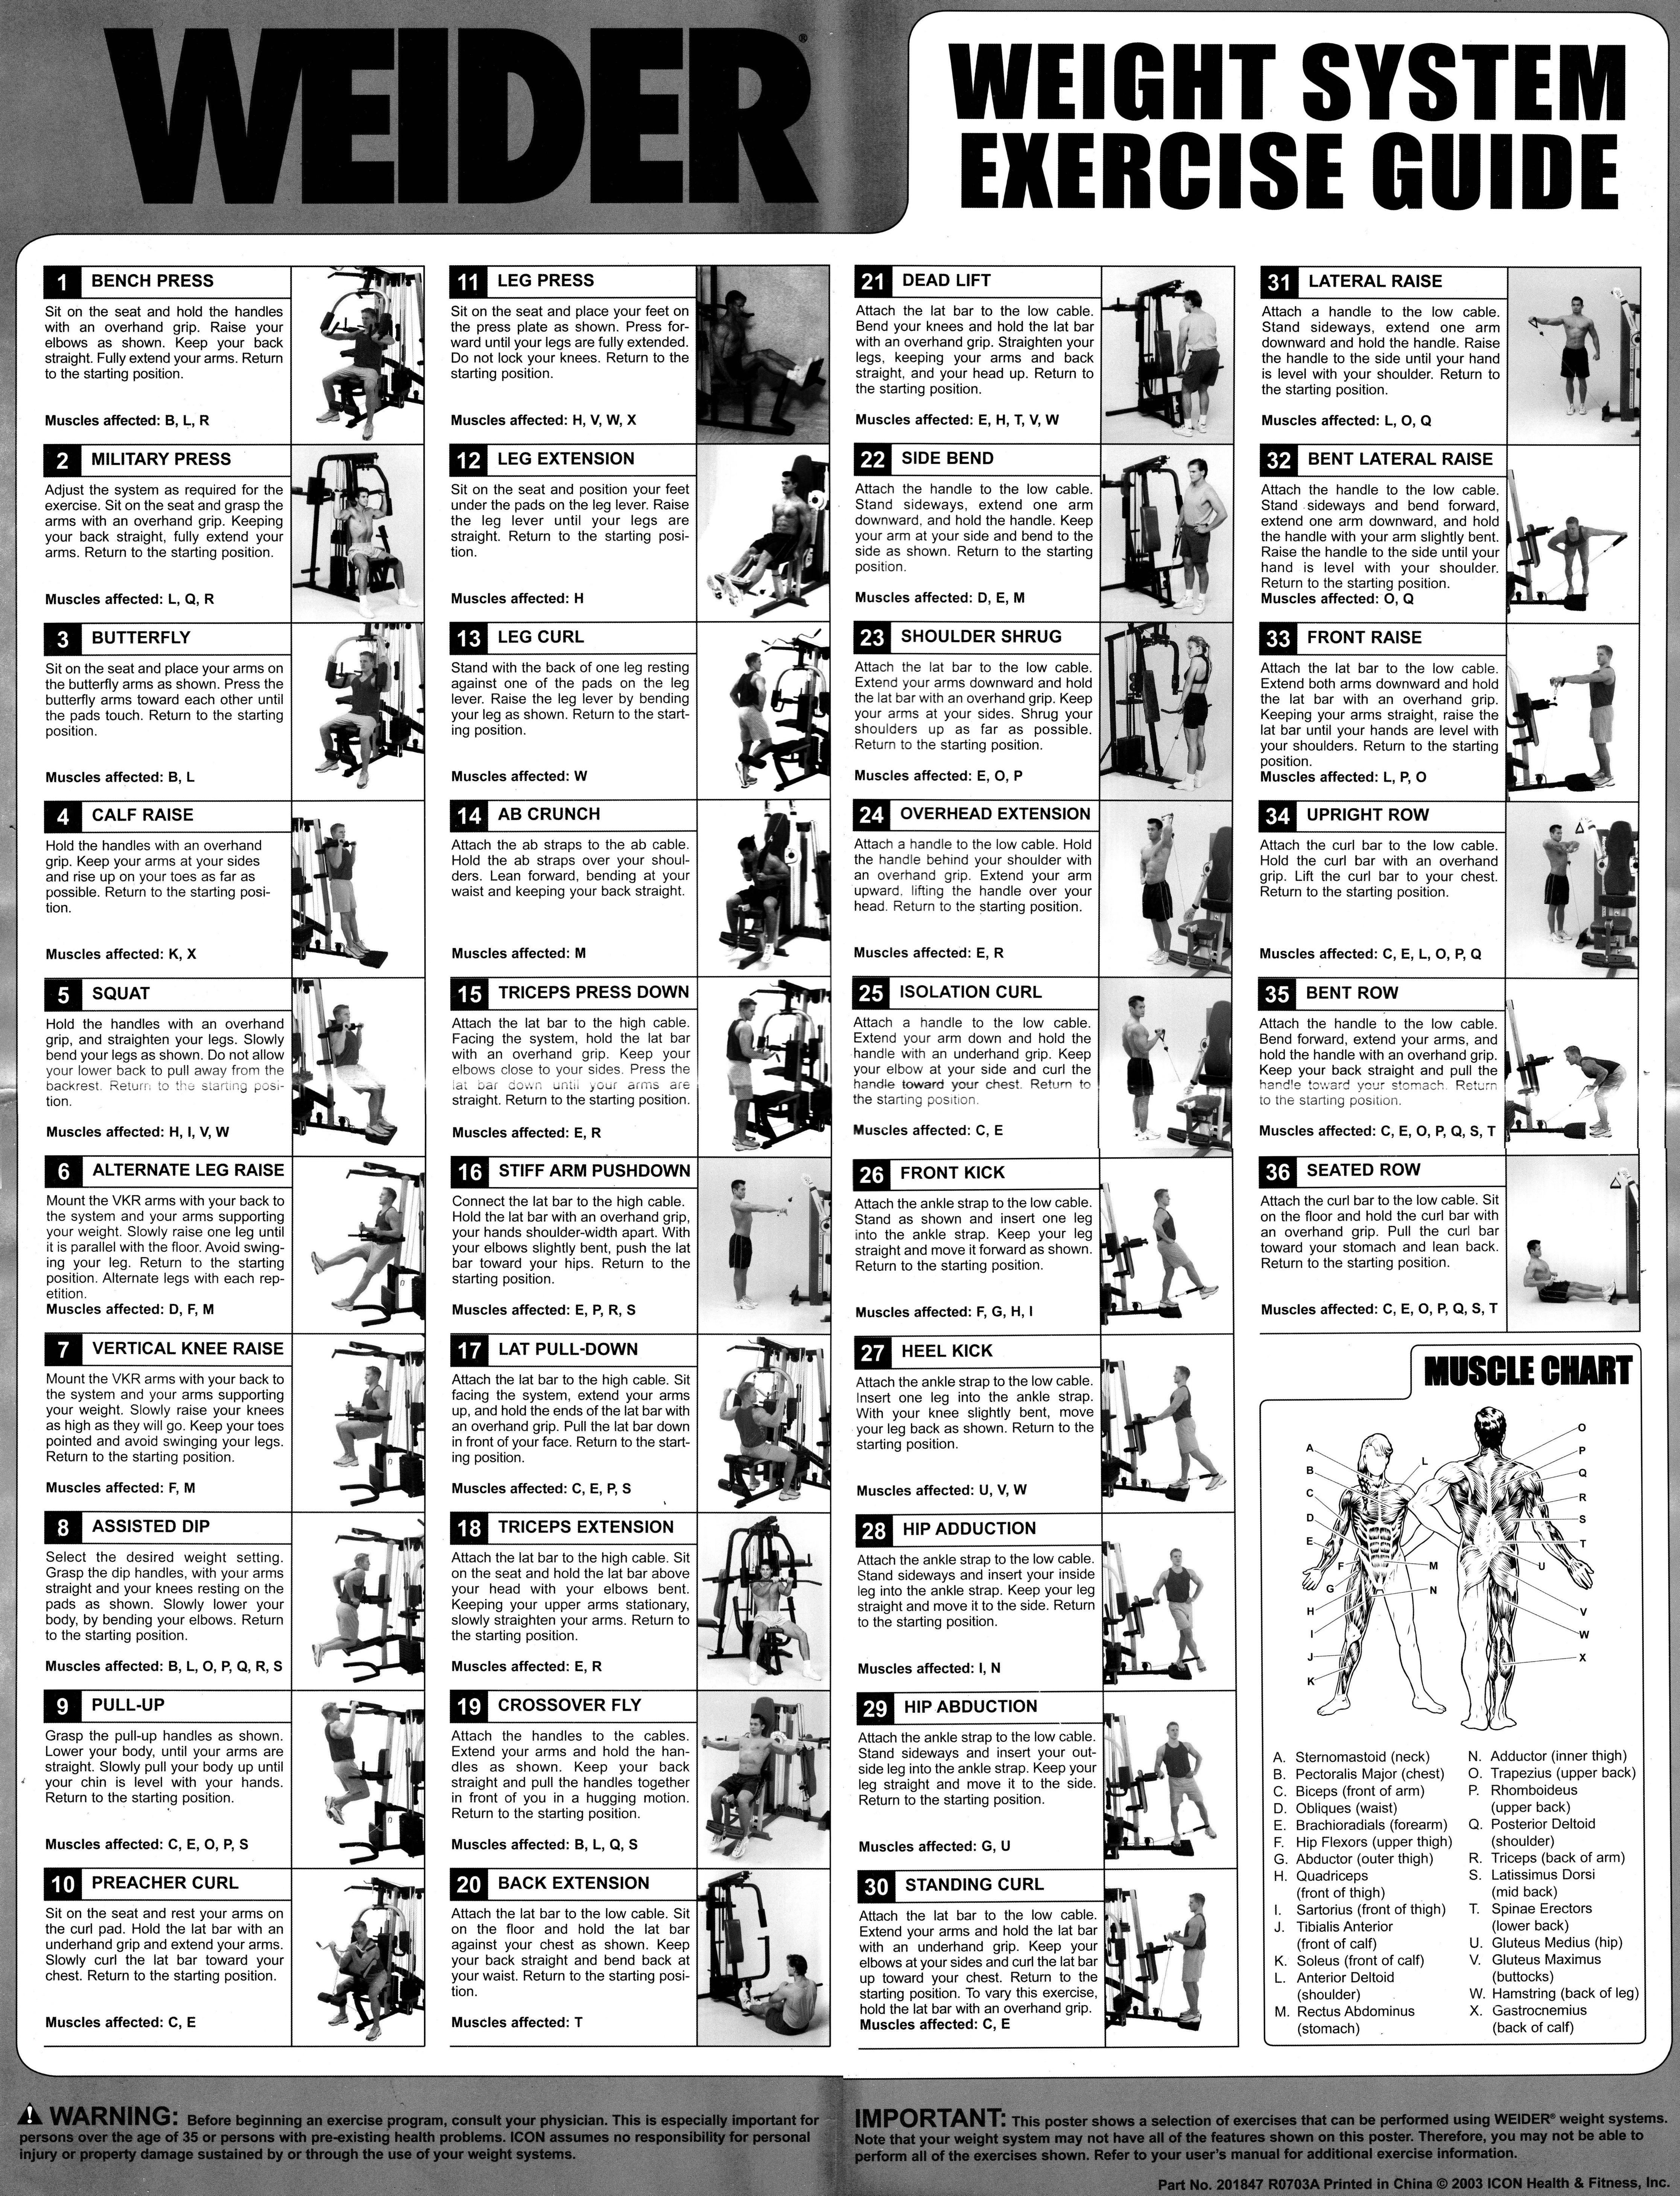 Weider Pro 6900 Exercise Chart | Exercise chart, Exercises and Chart